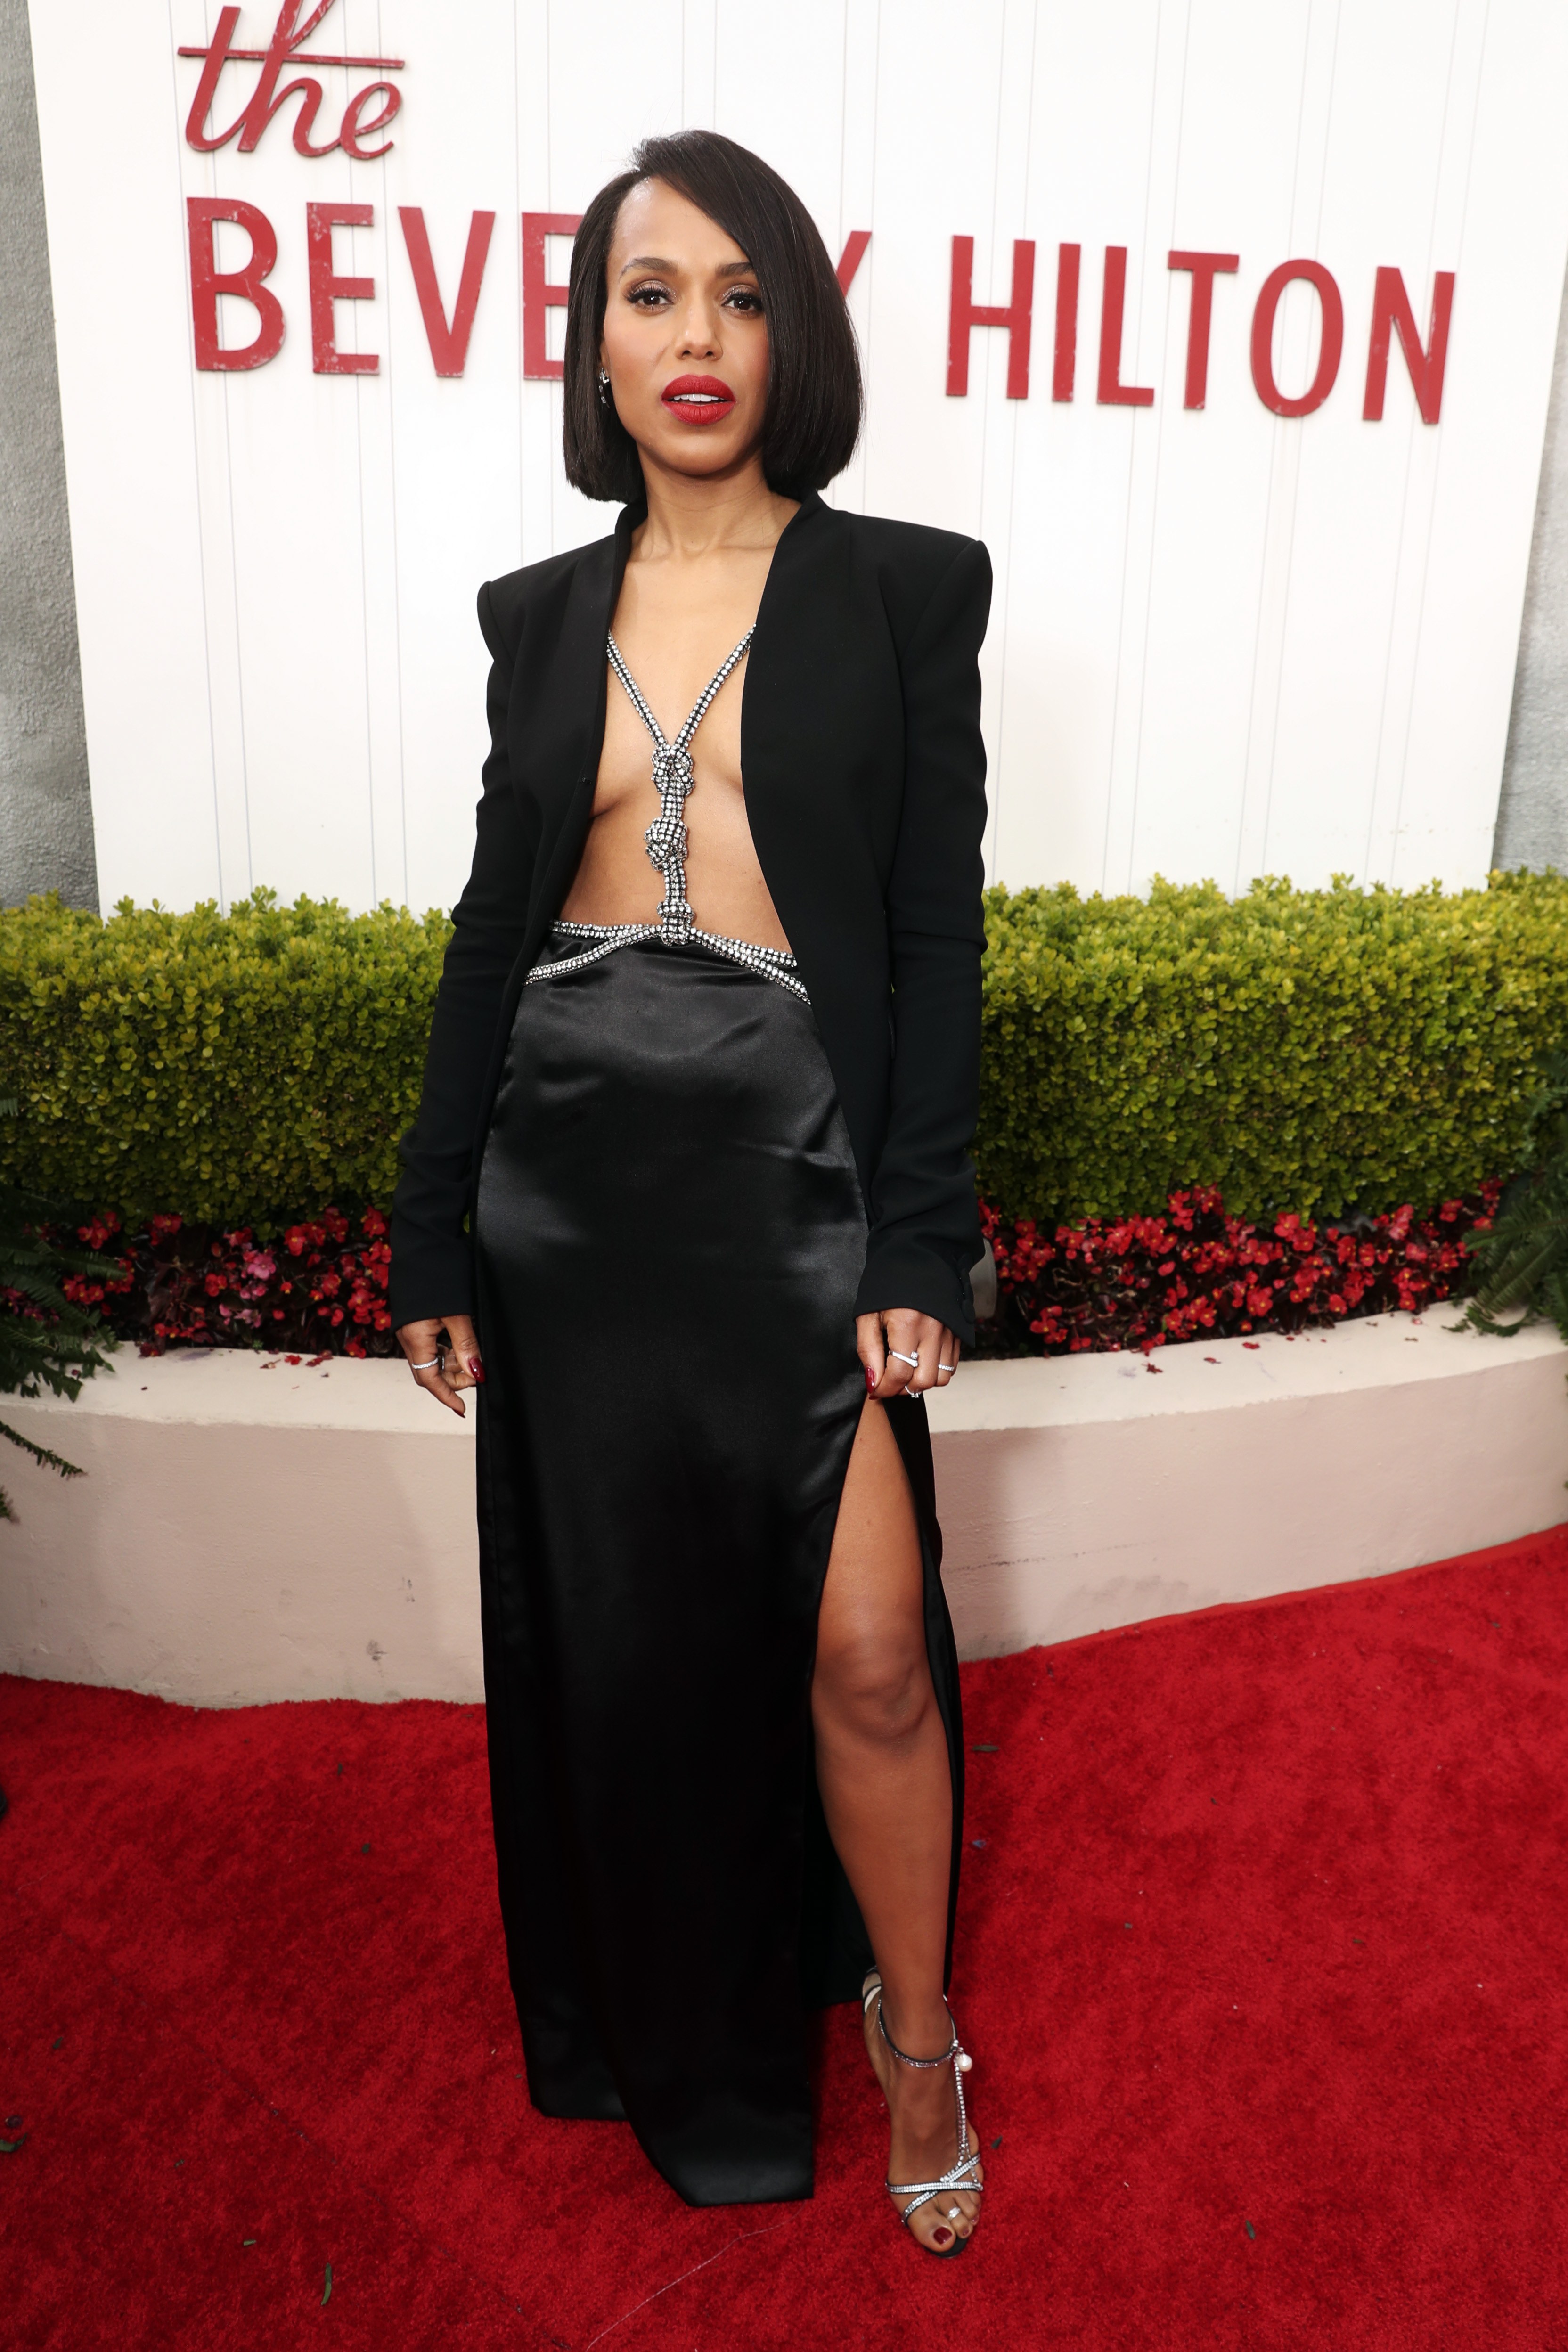 BEVERLY HILLS, CALIFORNIA - JANUARY 05: 77th ANNUAL GOLDEN GLOBE AWARDS -- Pictured: Kerry Washington arrives to the 77th Annual Golden Globe Awards held at the Beverly Hilton Hotel on January 5, 2020. -- (Photo by: Todd Williamson/NBC/NBCU Photo Bank via Getty Images)